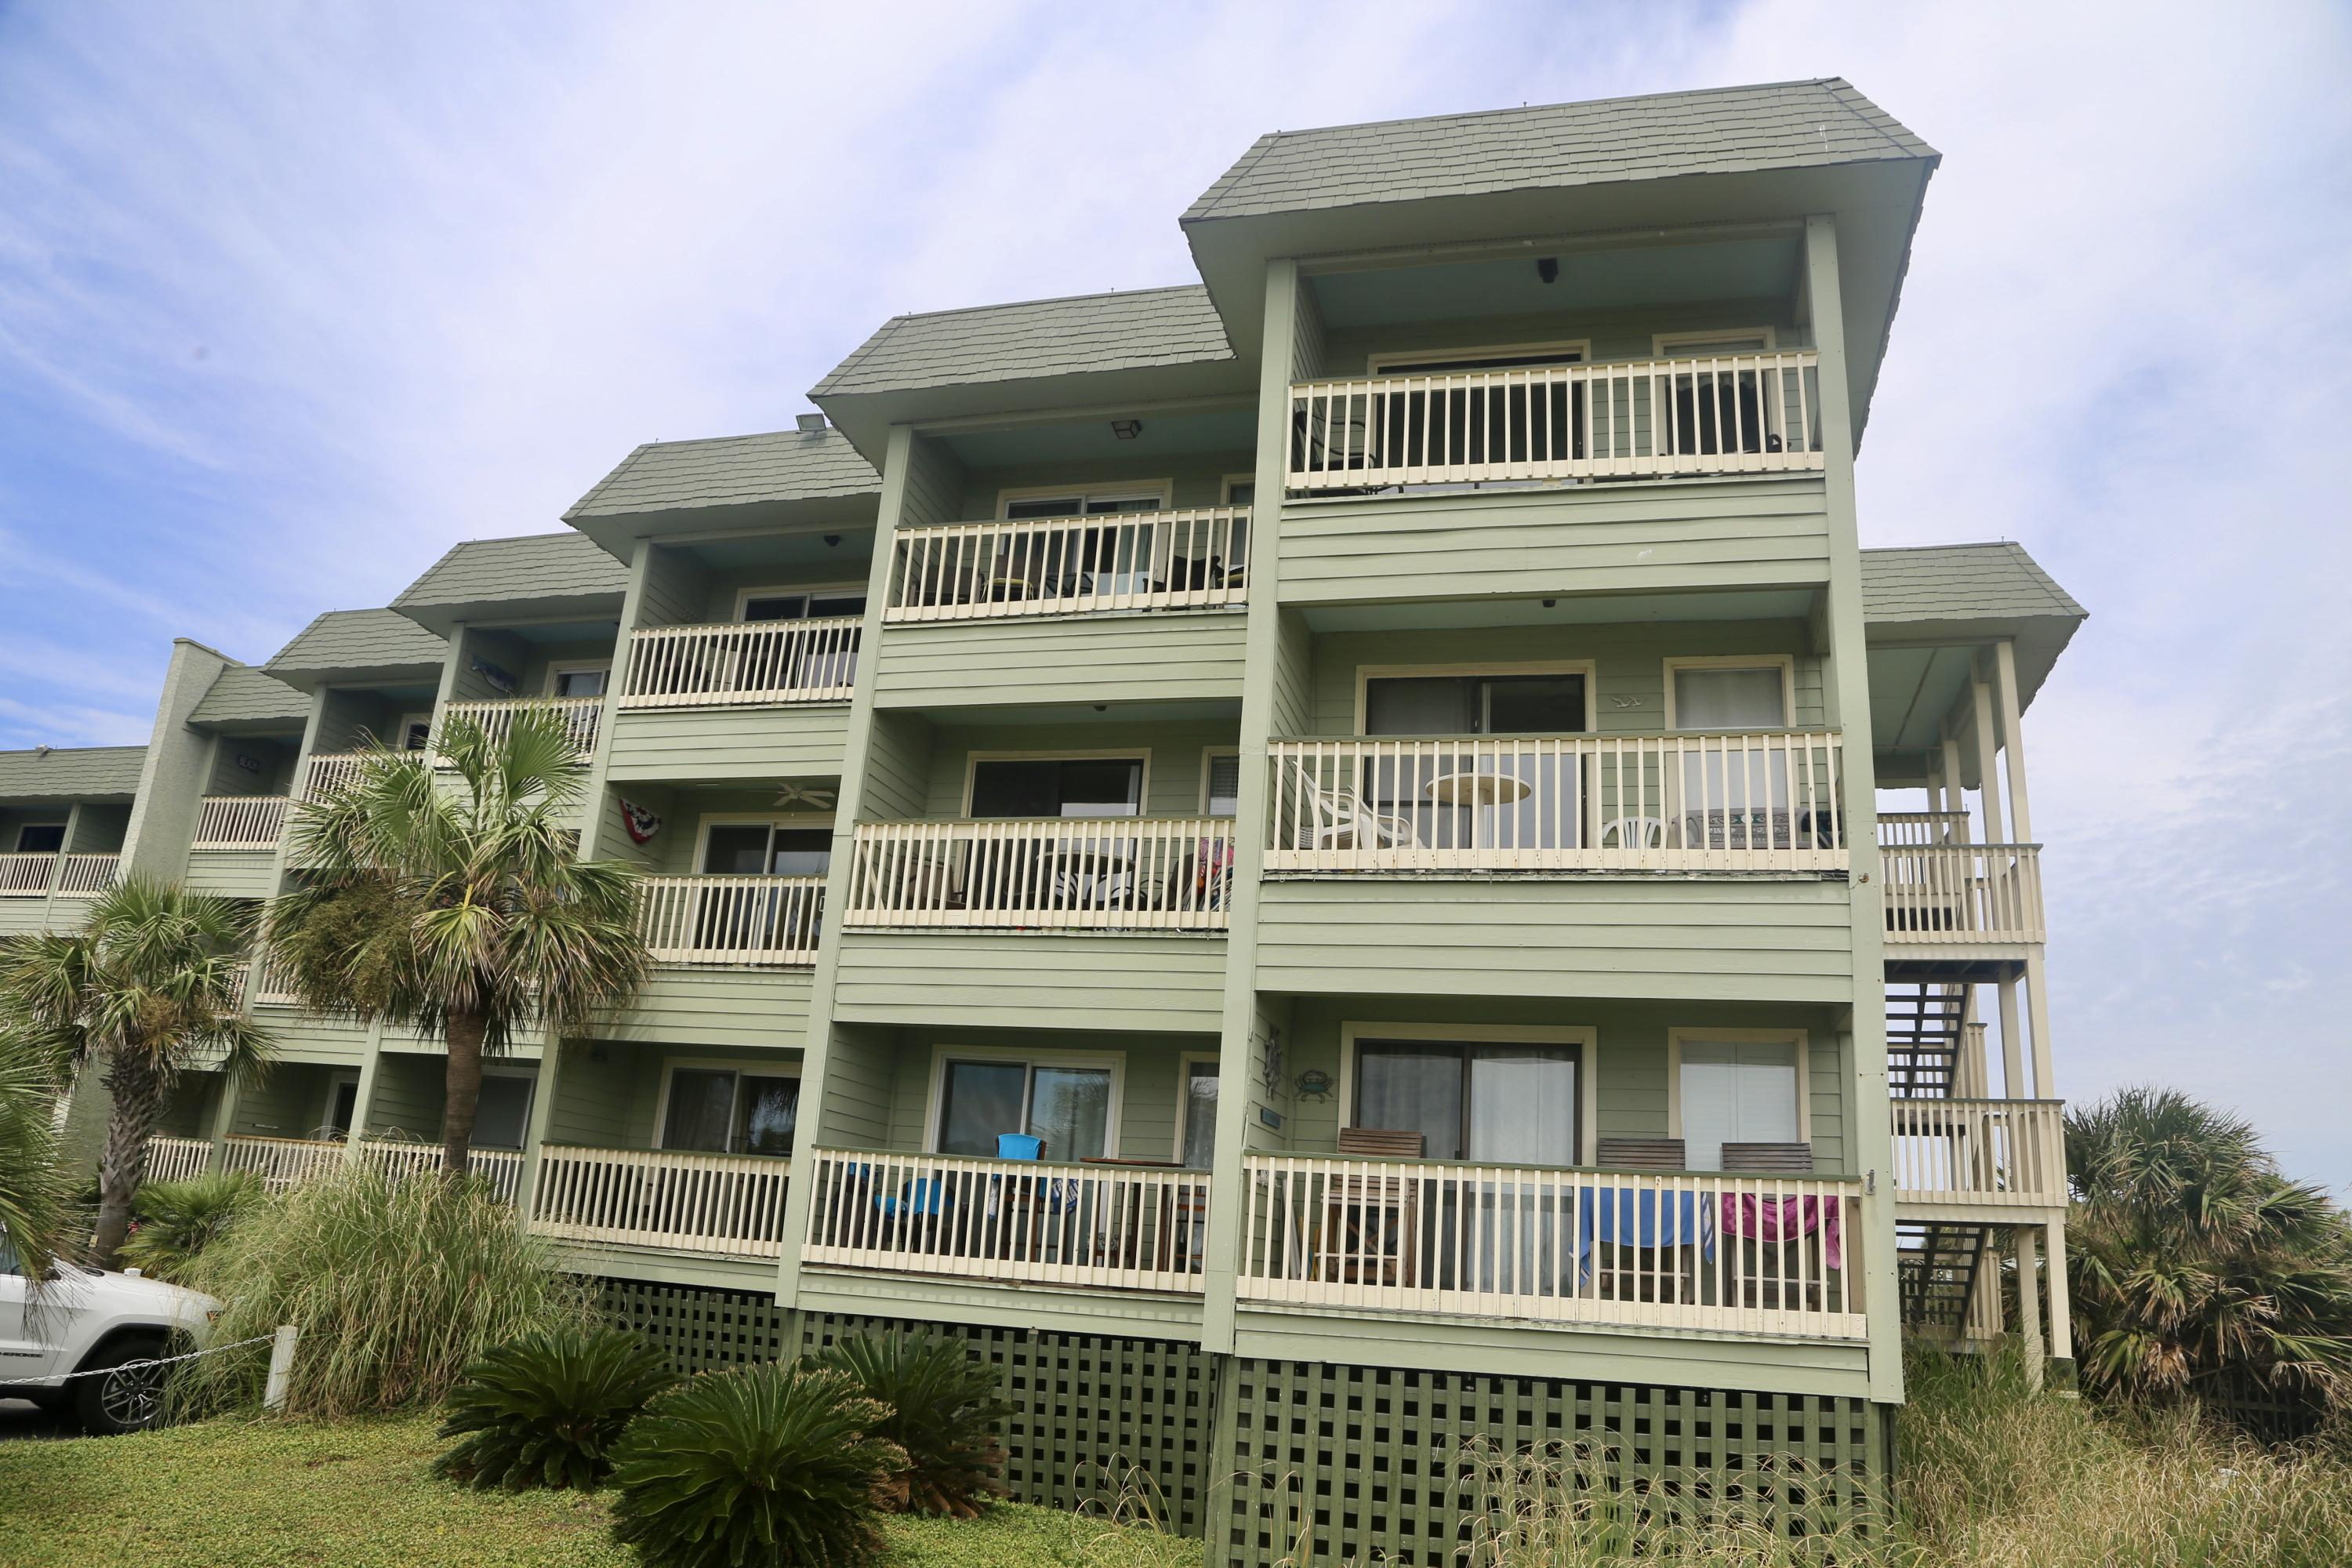 Sea Cabin On The Ocean Homes For Sale - 1300 Ocean, Isle of Palms, SC - 48